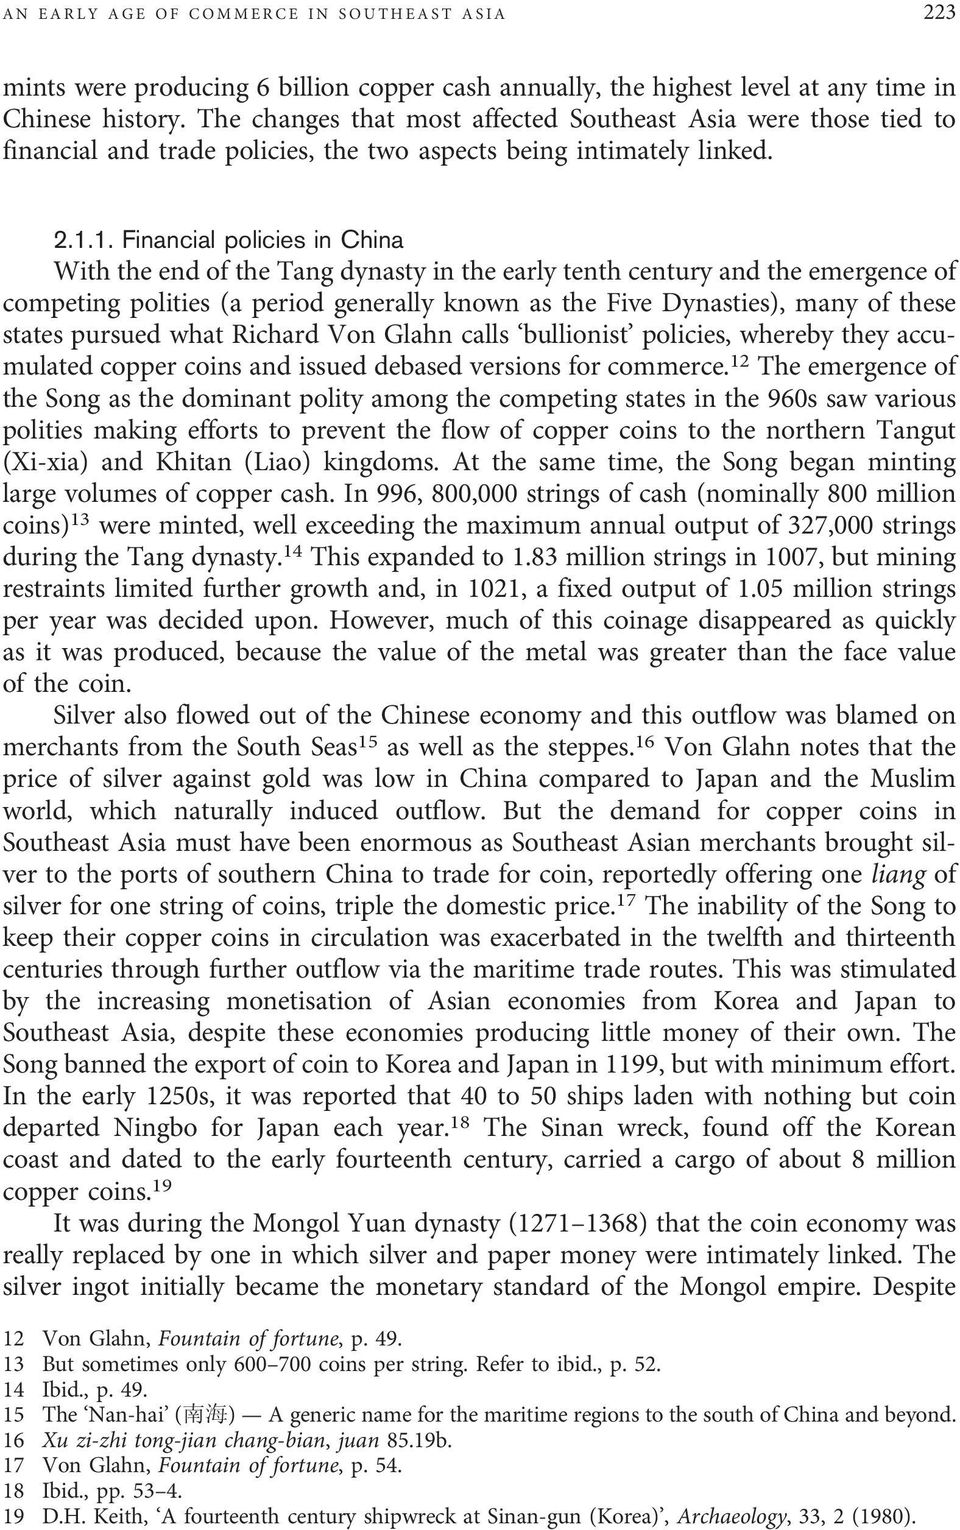 1. Financial policies in China With the end of the Tang dynasty in the early tenth century and the emergence of competing polities (a period generally known as the Five Dynasties), many of these